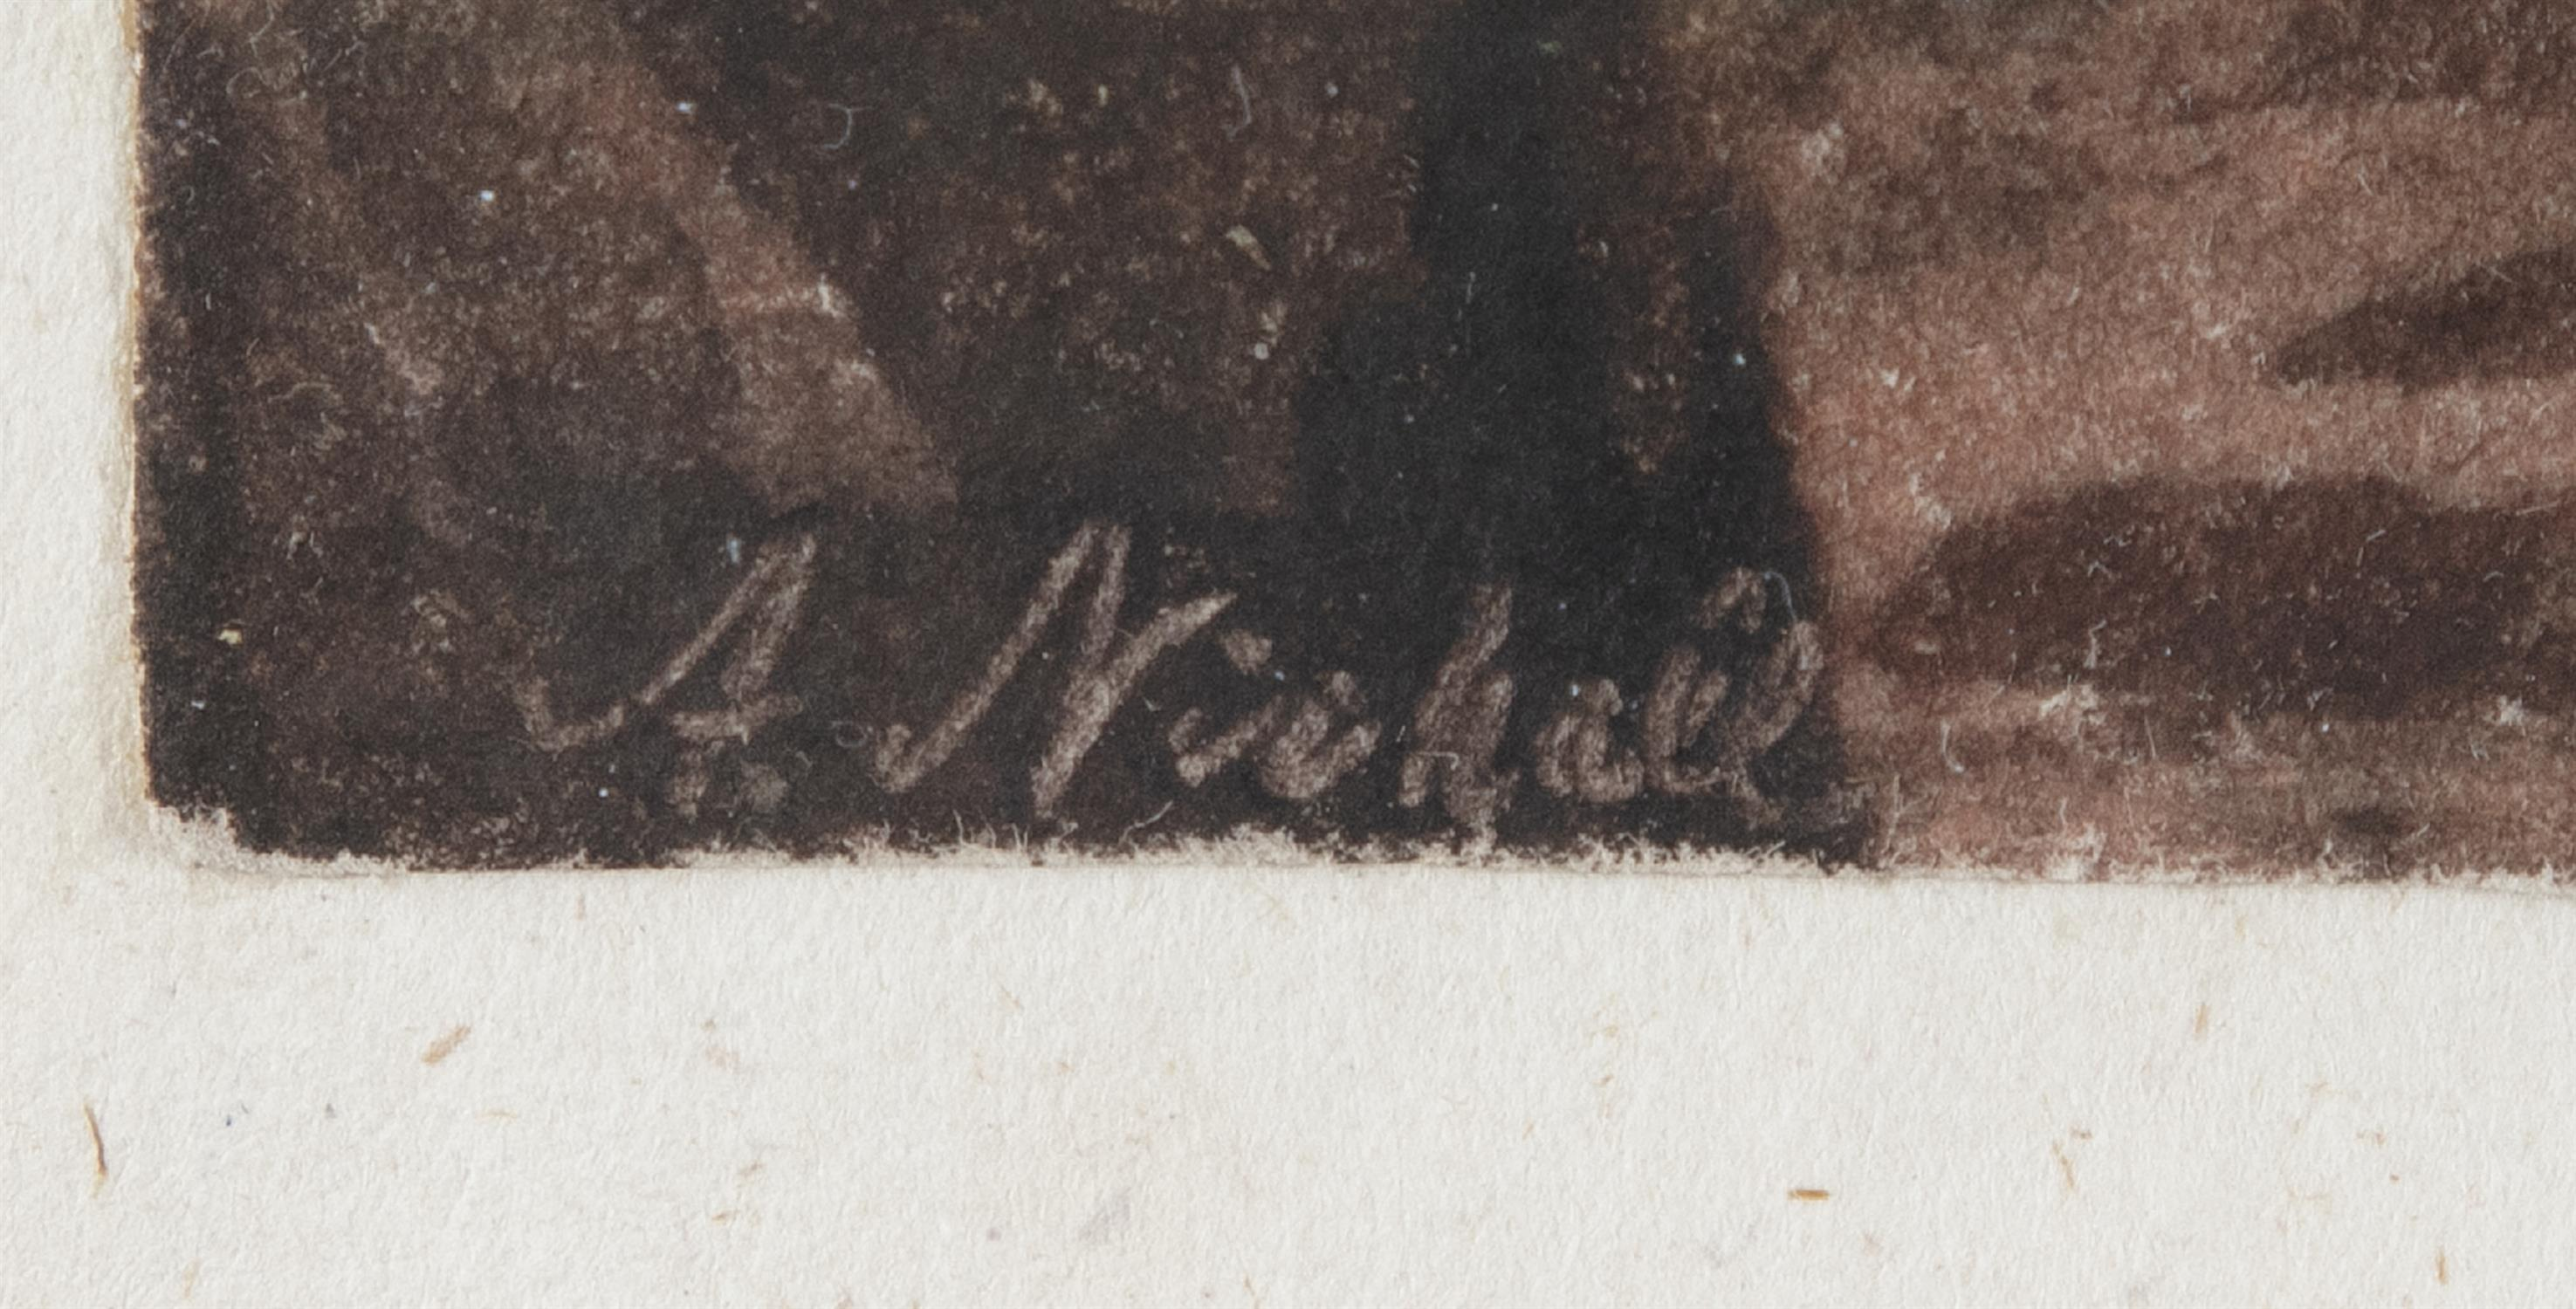 Andrew Nicholl RHA (1804-1886) From the East, Bay of Port Noffer; the 'Loom', 'Giant's Causeway' - Image 3 of 5